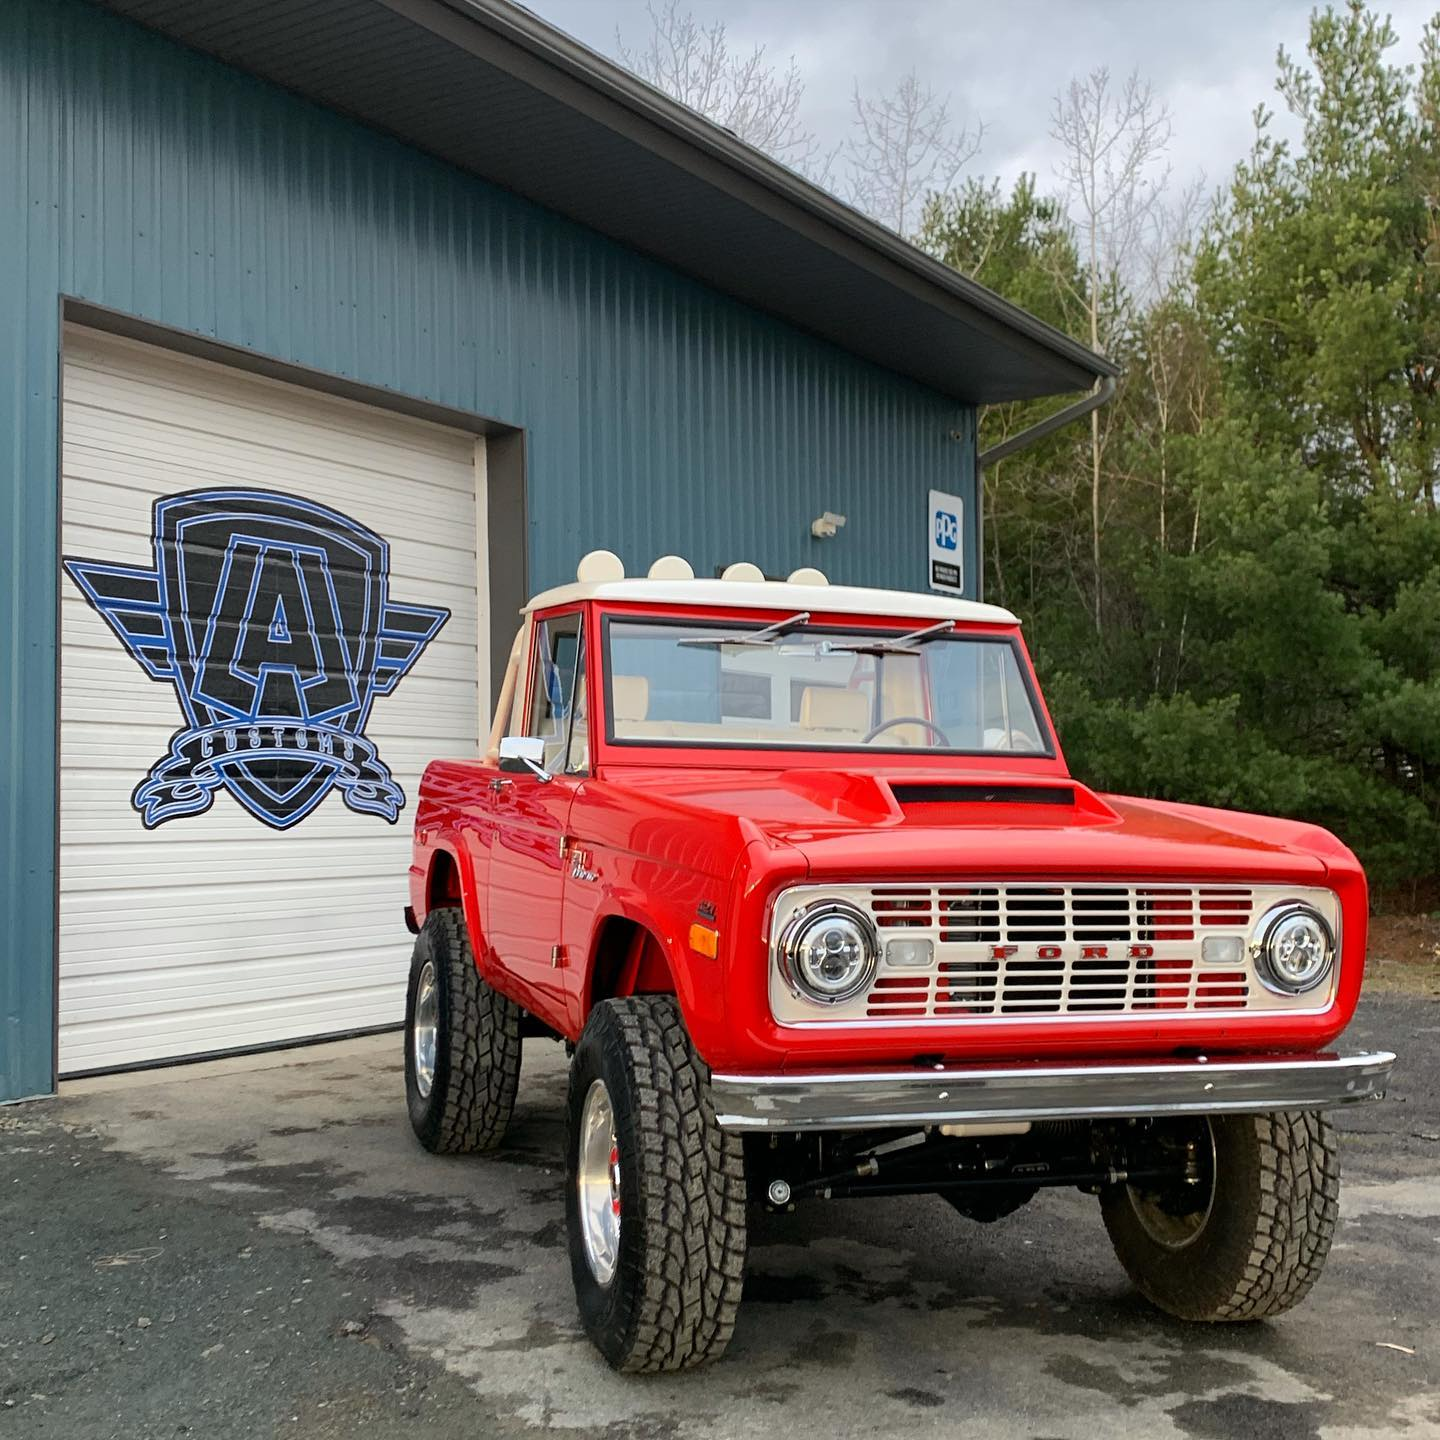 LAL-Customs-Ford-Bronco-Restoration-T-Man-Build-27